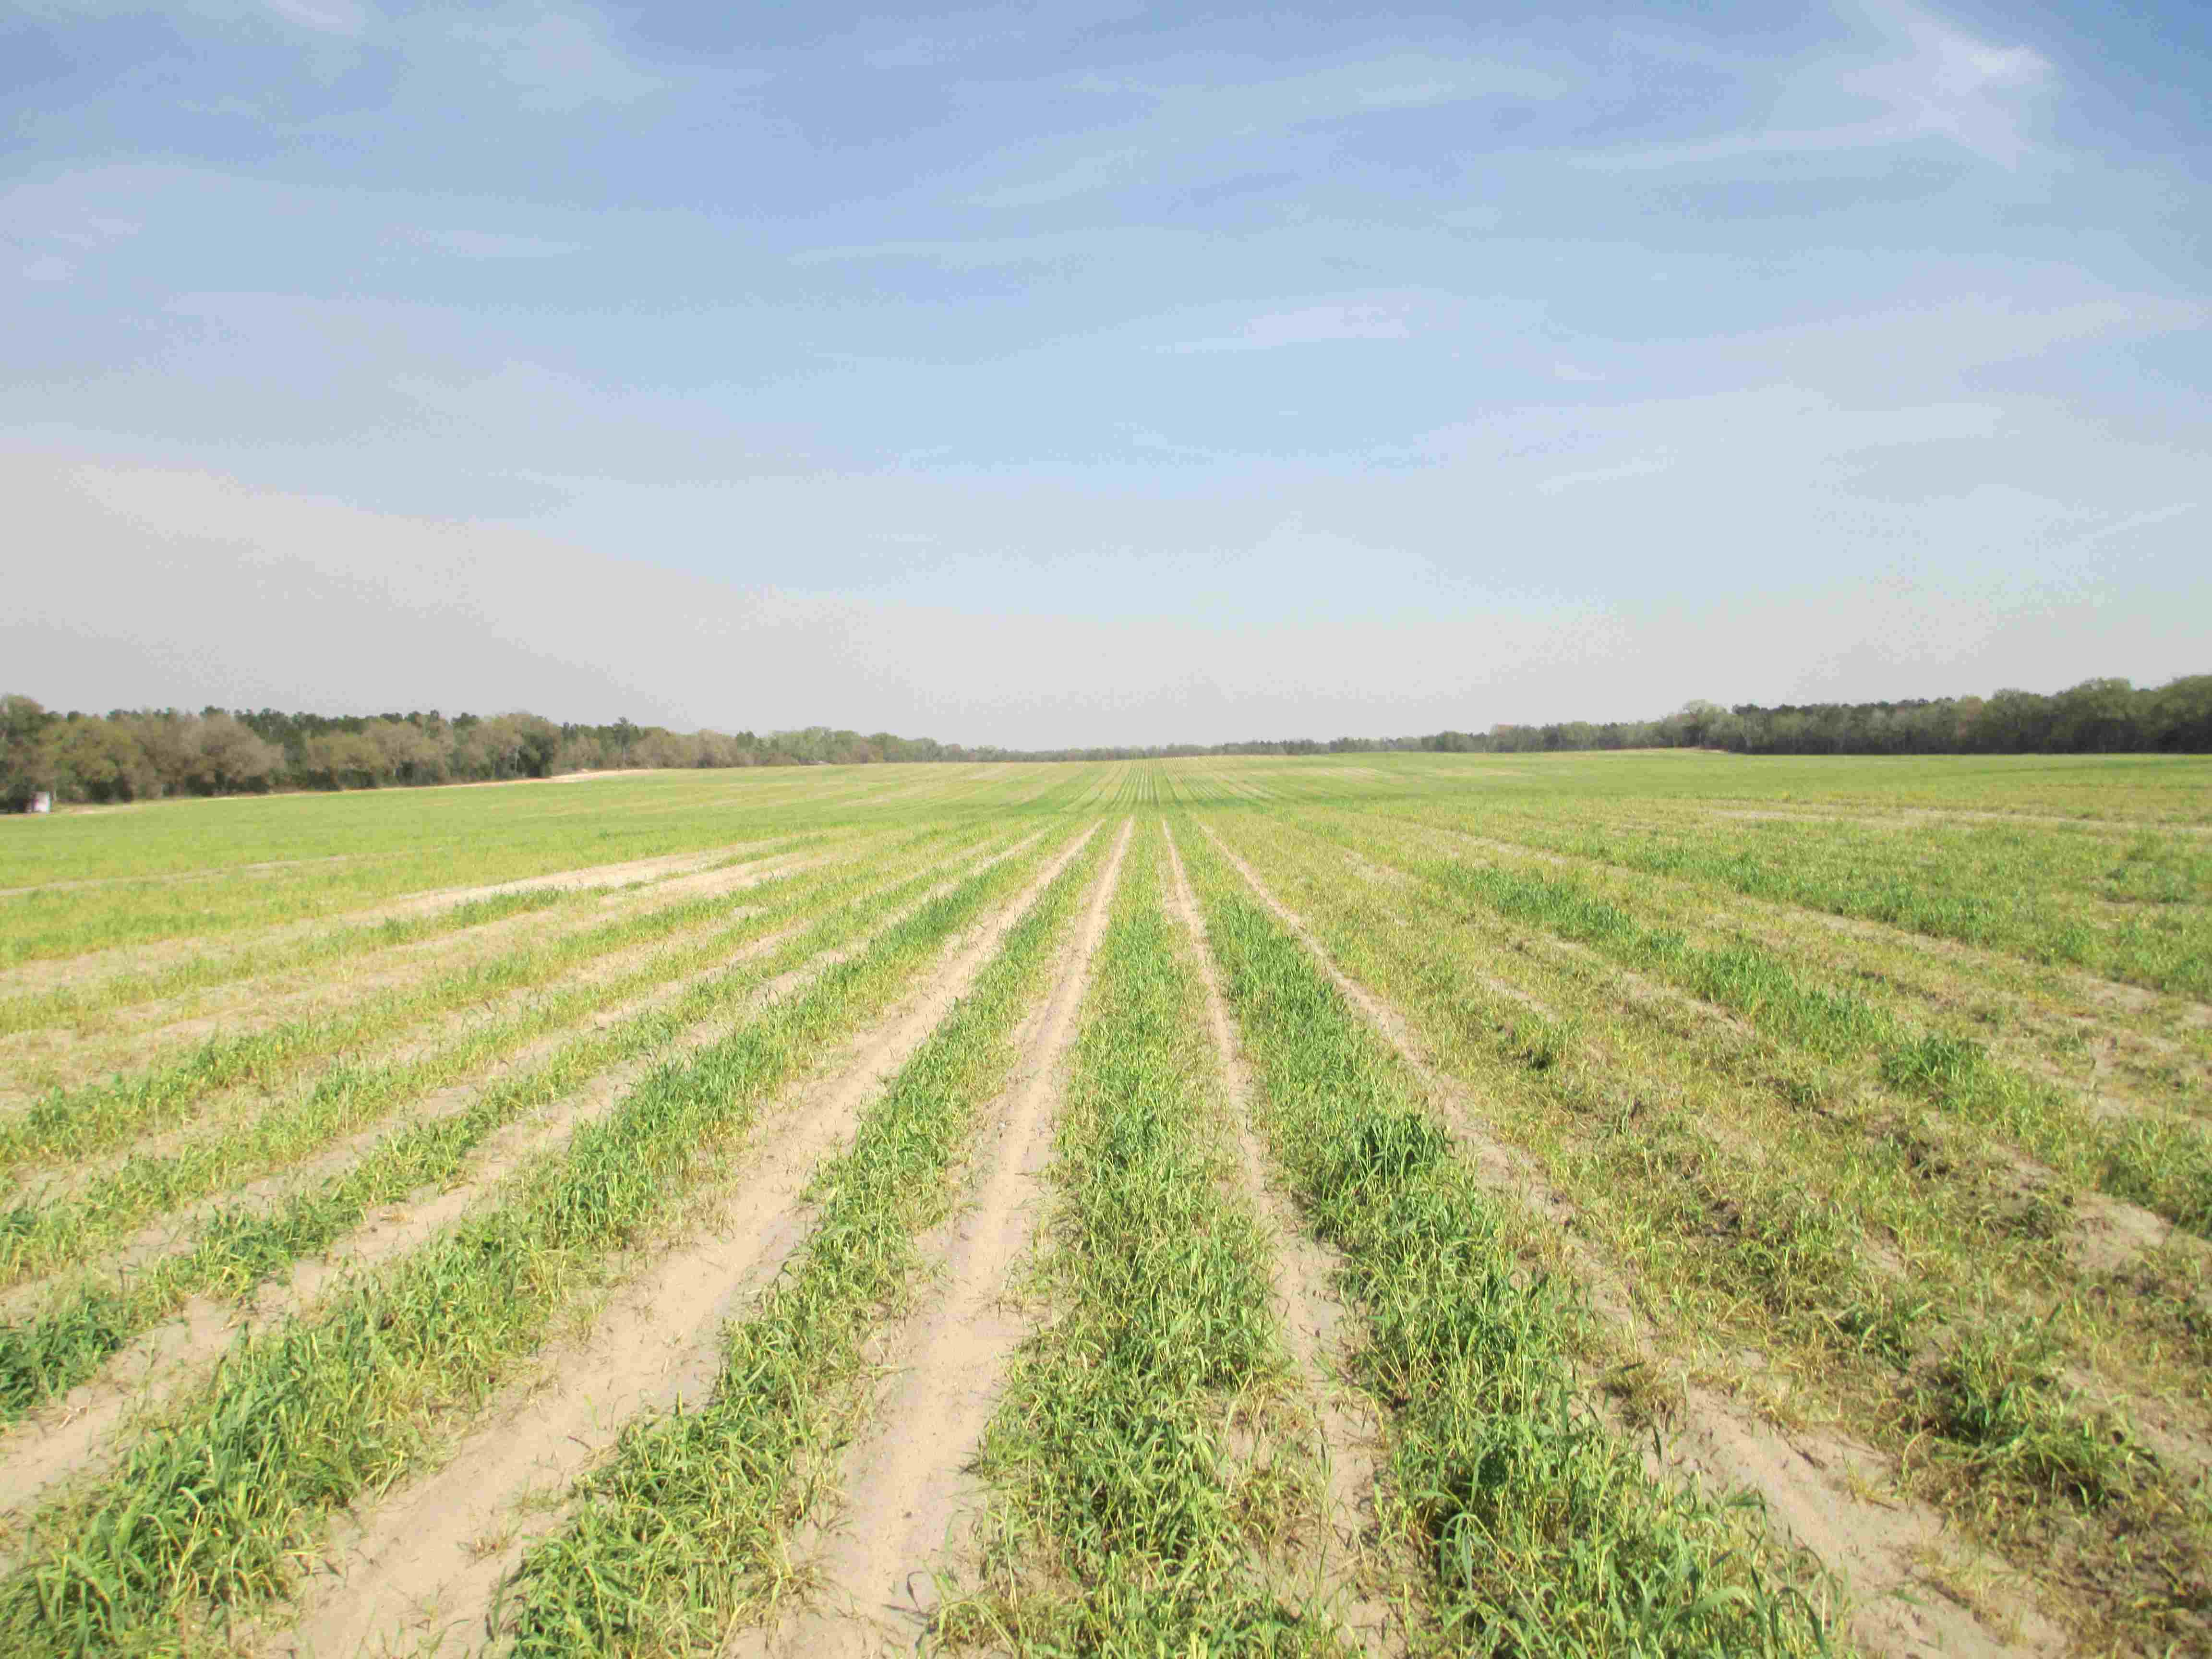 Strip tilled corn just starting to come up near Dellwood, FL. Credit: J. Thompson